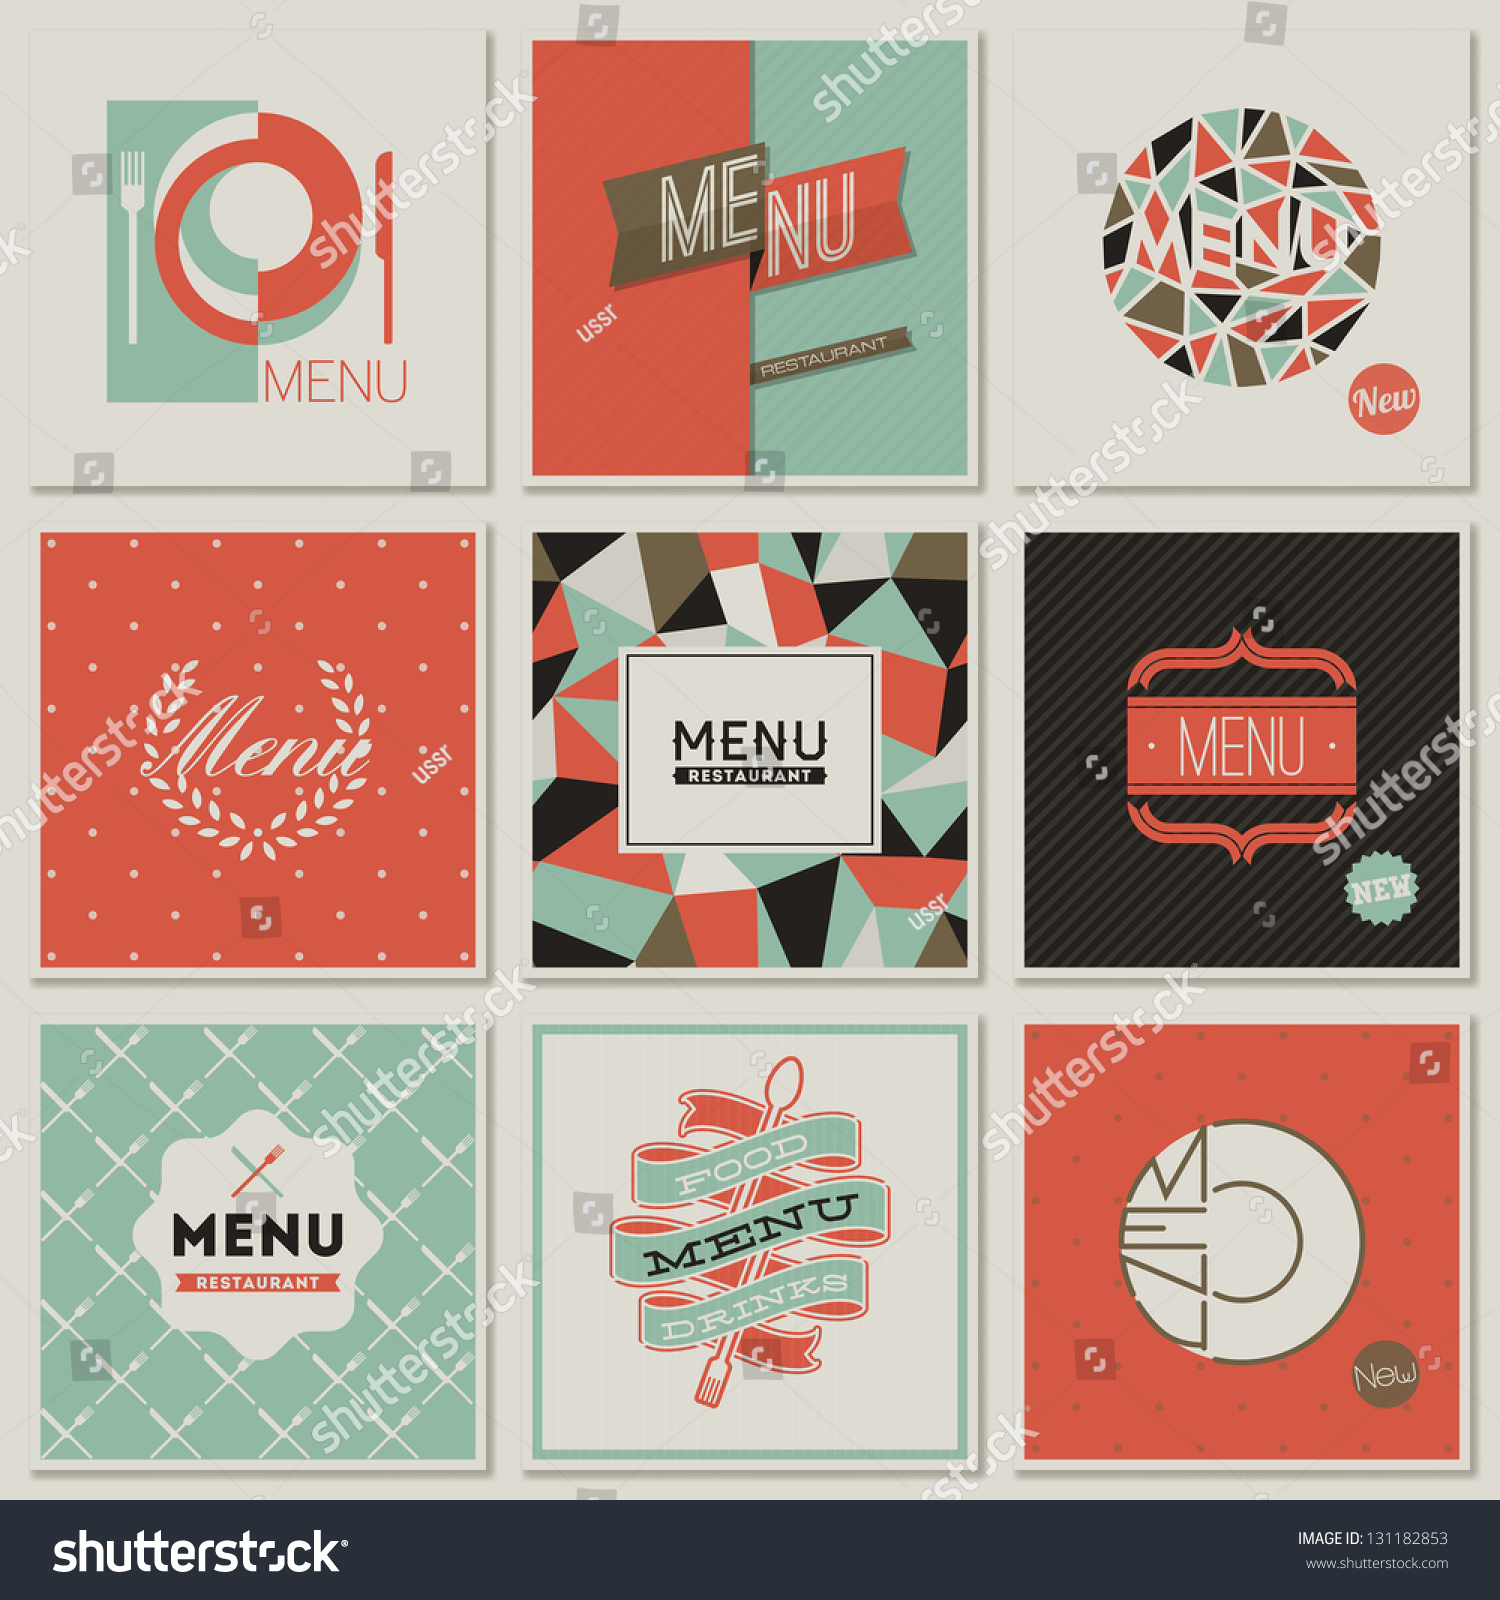 Restaurant menu designs collection retrostyled vector